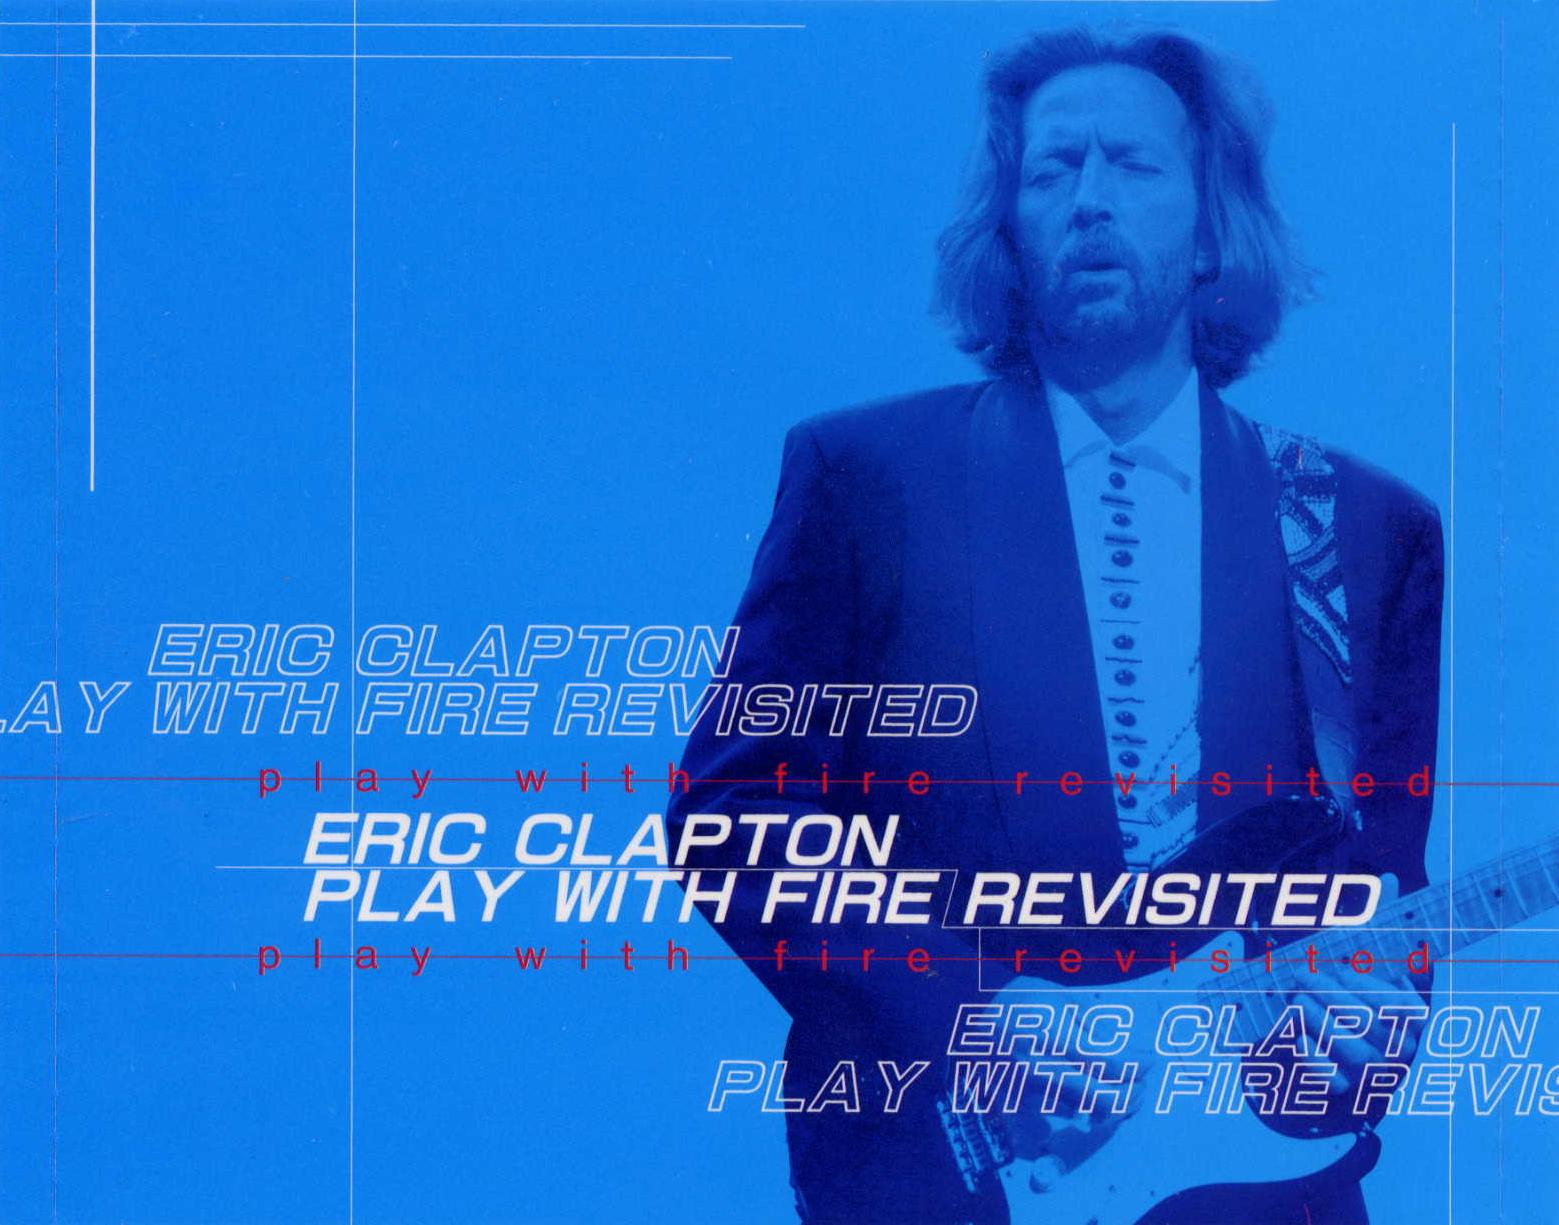 Eric Clapton Play With Fire Revisited